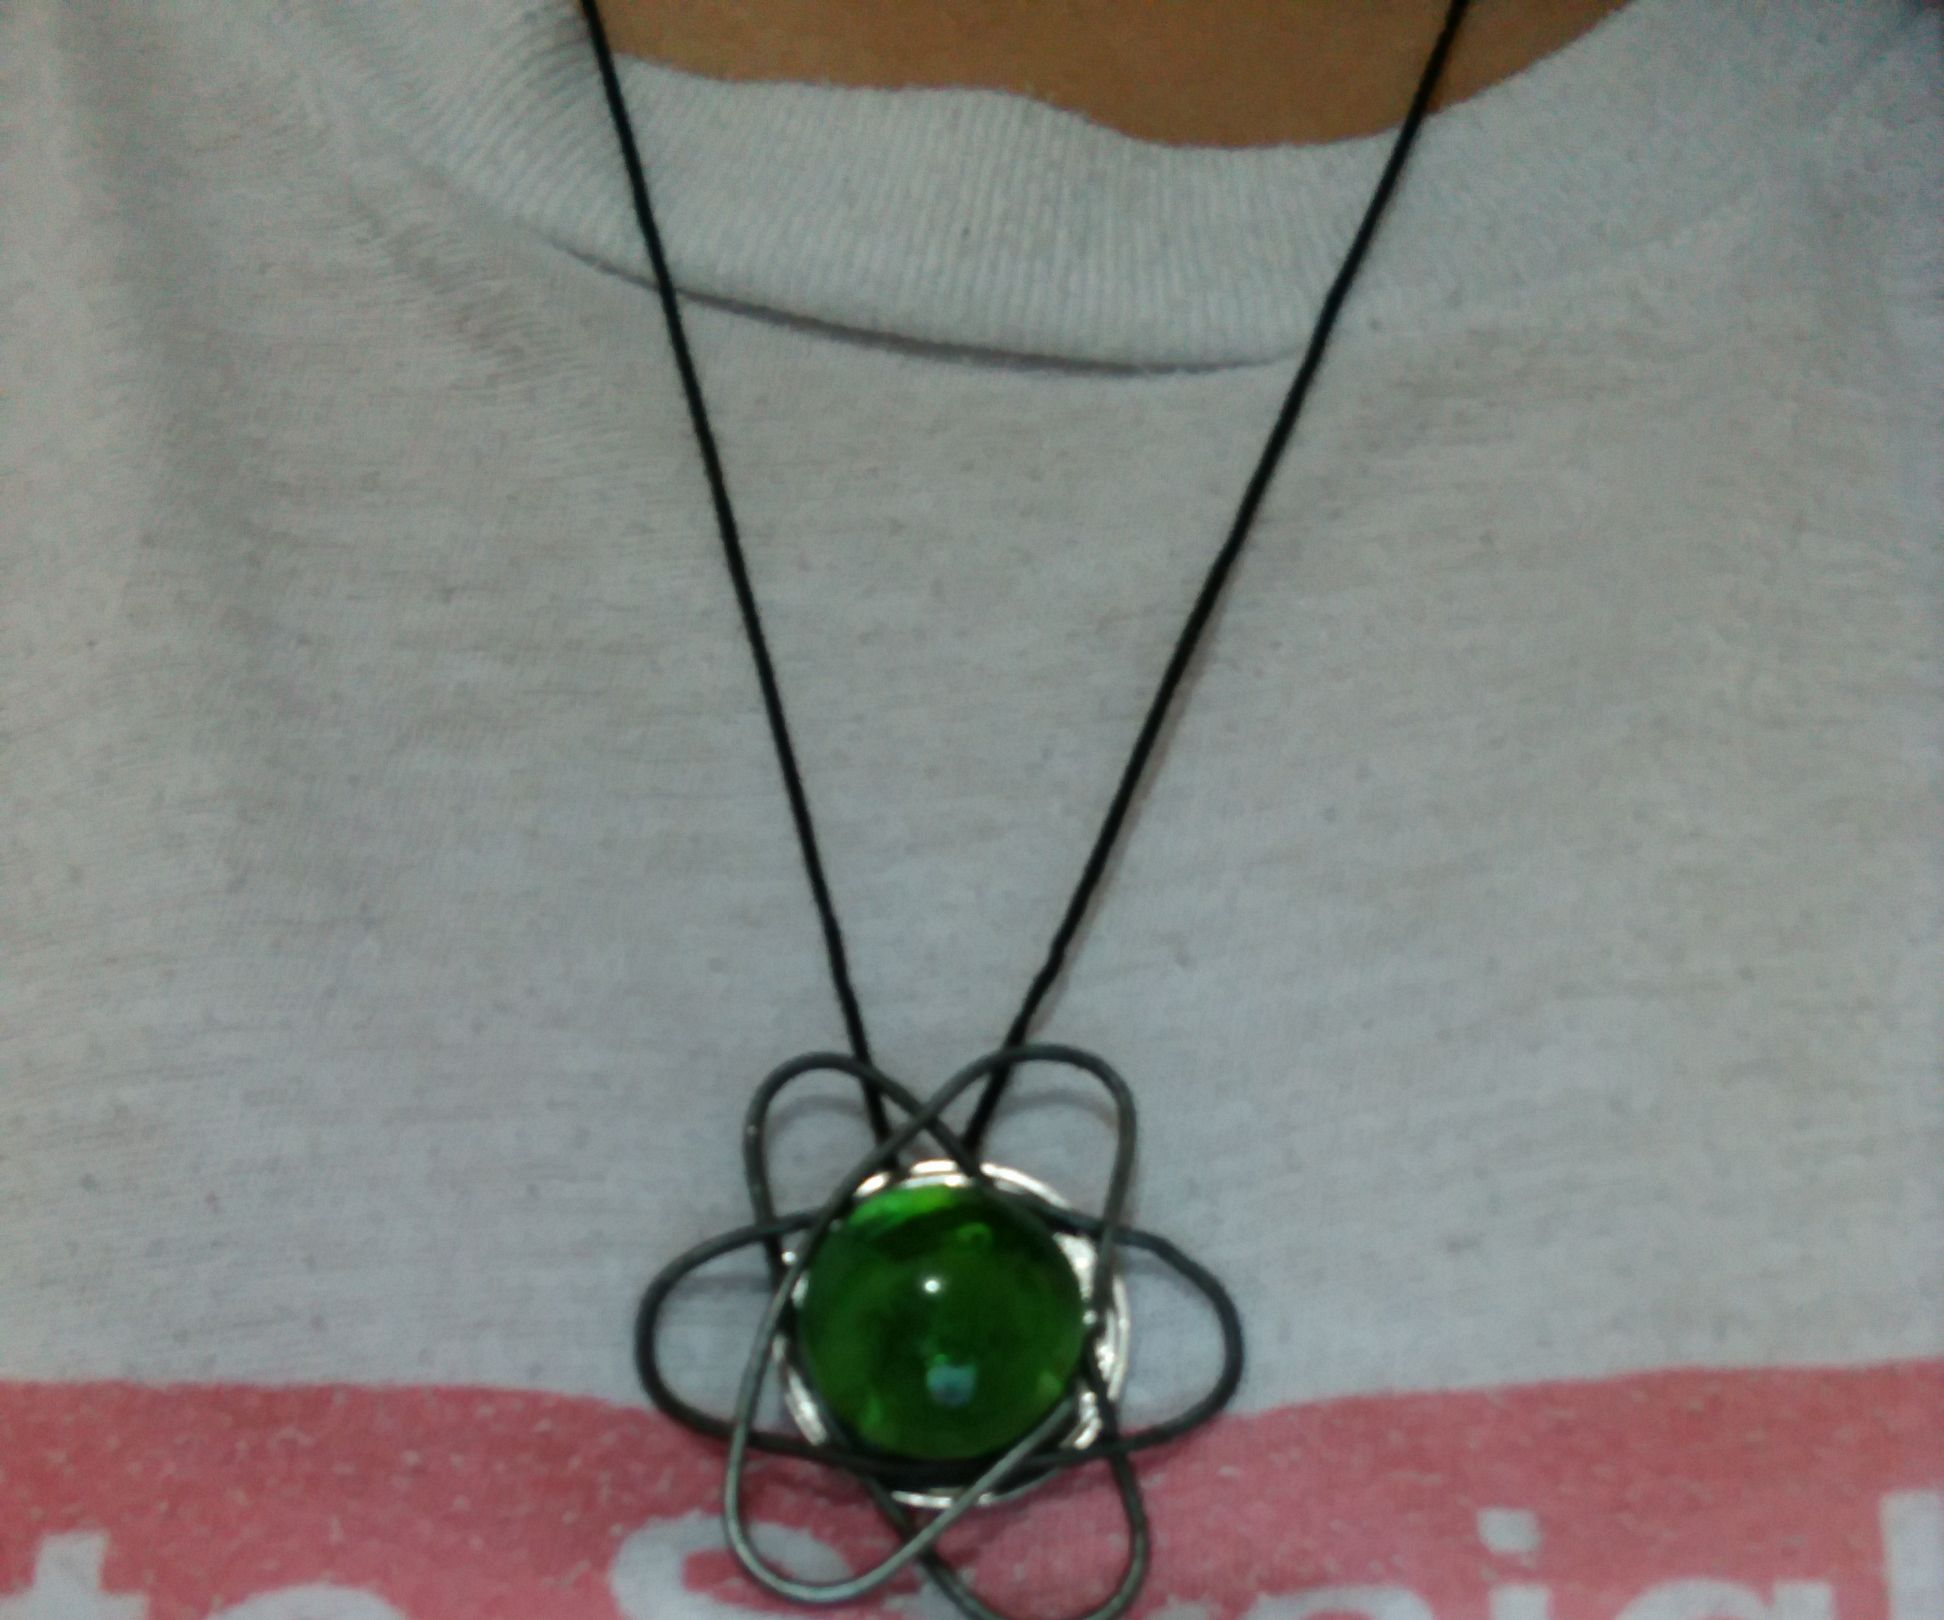 Atom-inspired Necklace